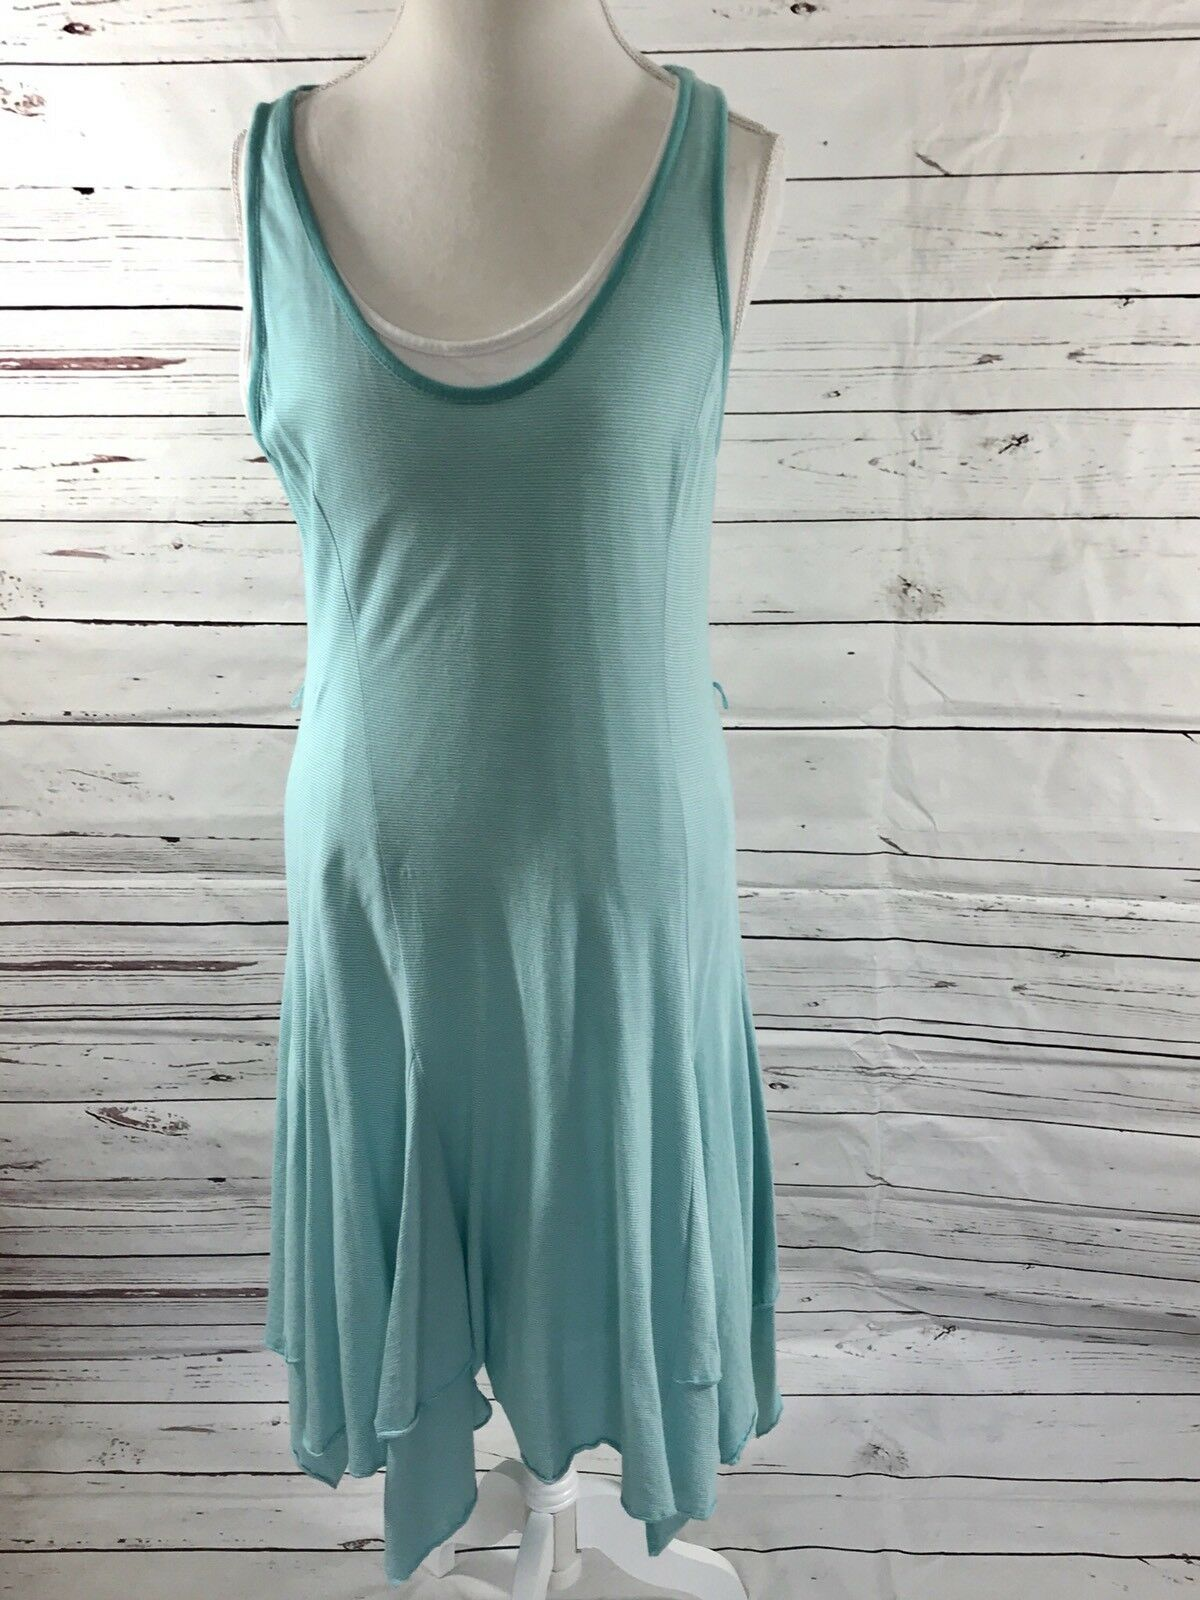 Ralph Lauren Jeans Company Co Womens Dress bluee Aqua Stripes casual Size  L